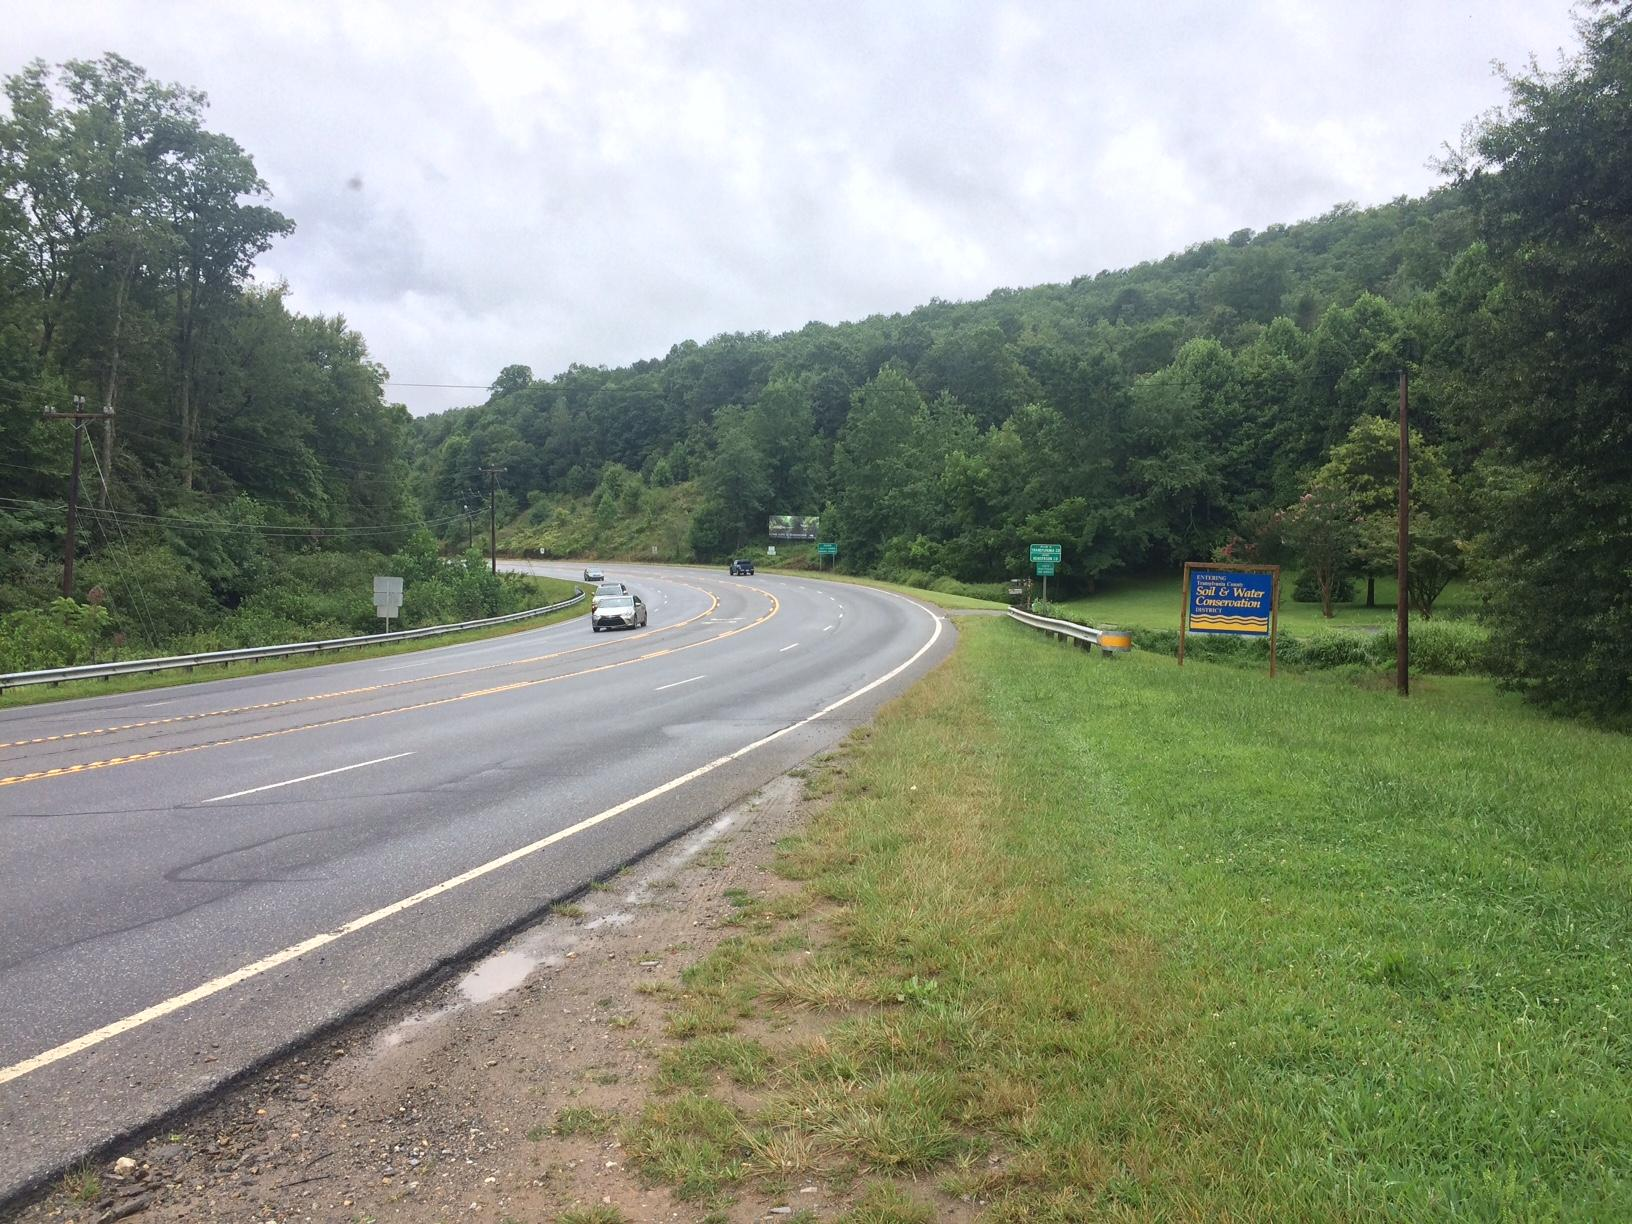 The trail would begin at Westfeldt Park in Mills River, not far from the Asheville Airport, and eventually stretch 15 miles to Brevard, intersecting with the entrance to Pisgah Forest. It would be for walking, running, and biking. (Photo credit: WLOS staff)